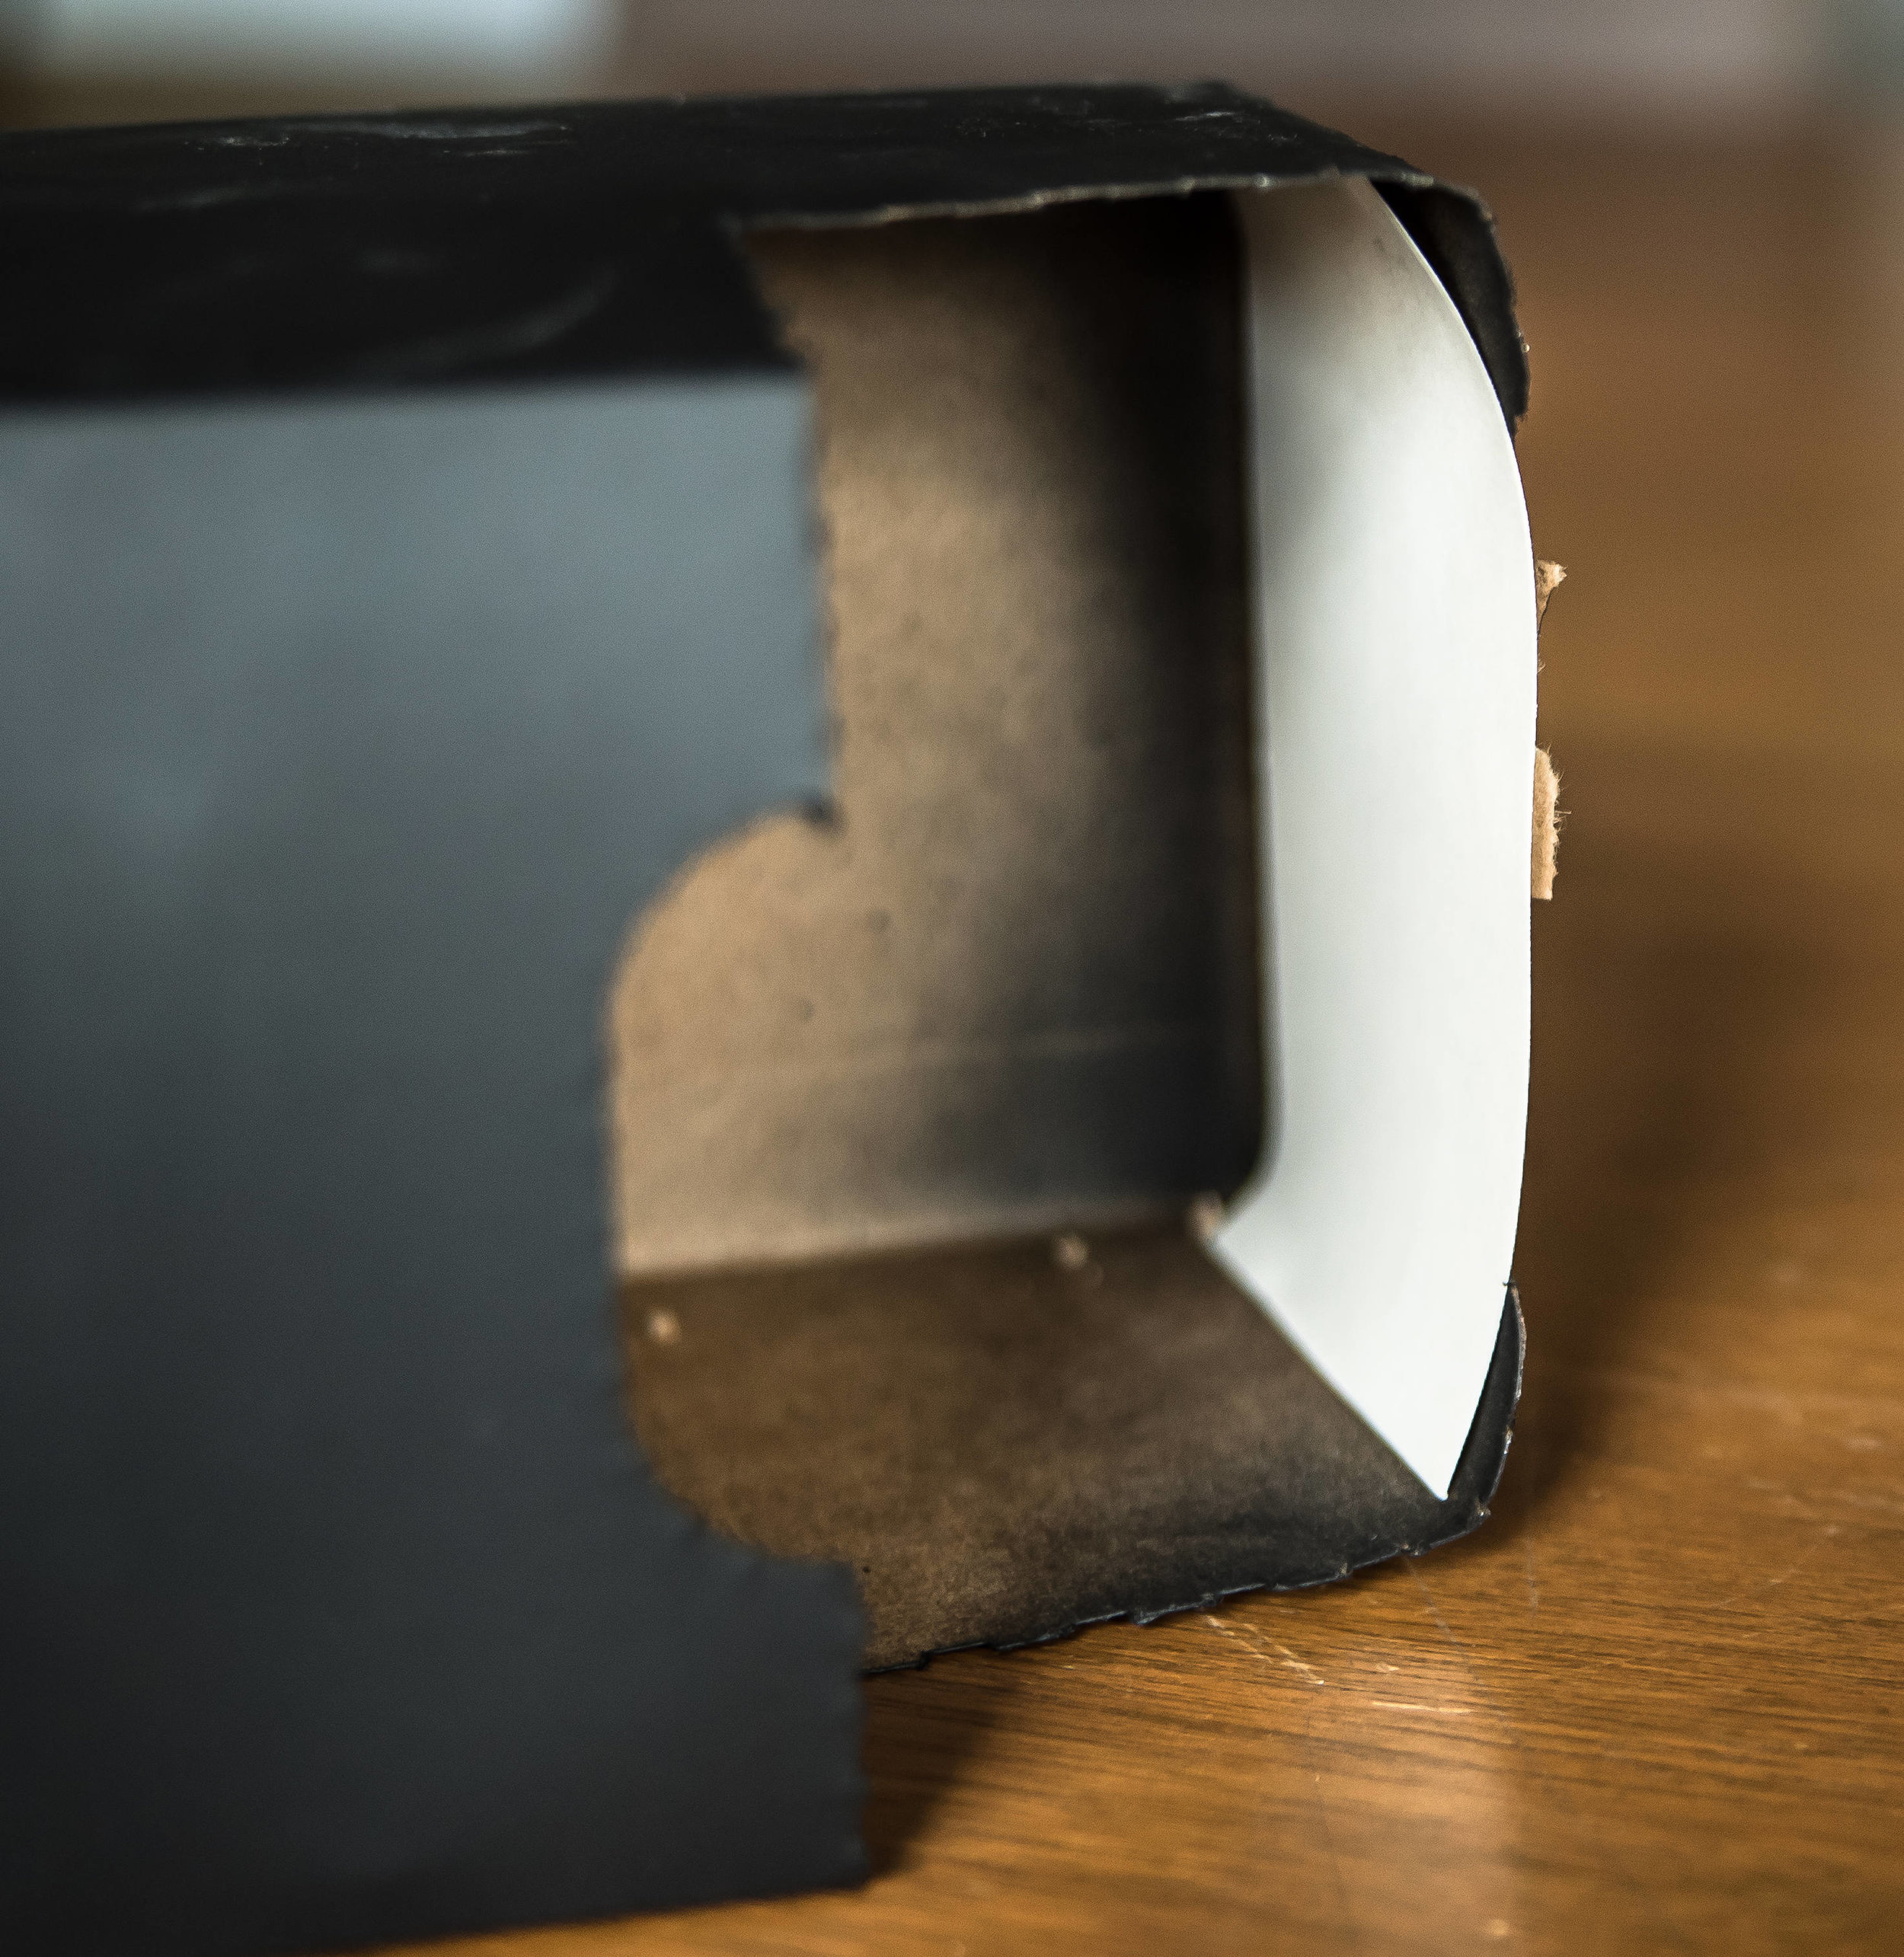 In the space where the soda box tears open, cut a piece of white paper to fit along the bottom. The sun will appear here!